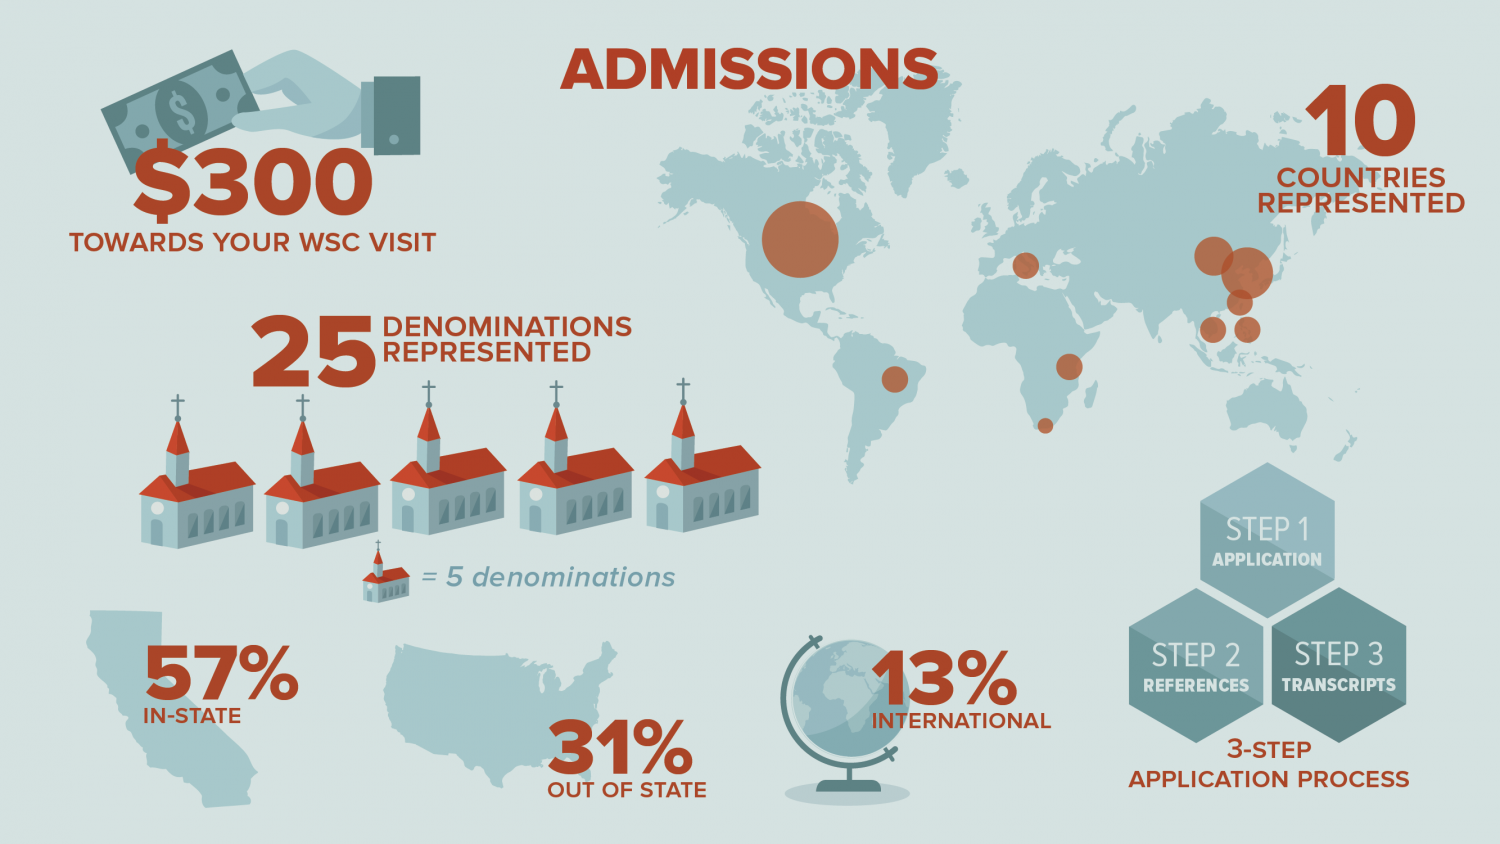 WSC At a Glance Admissions Infographic